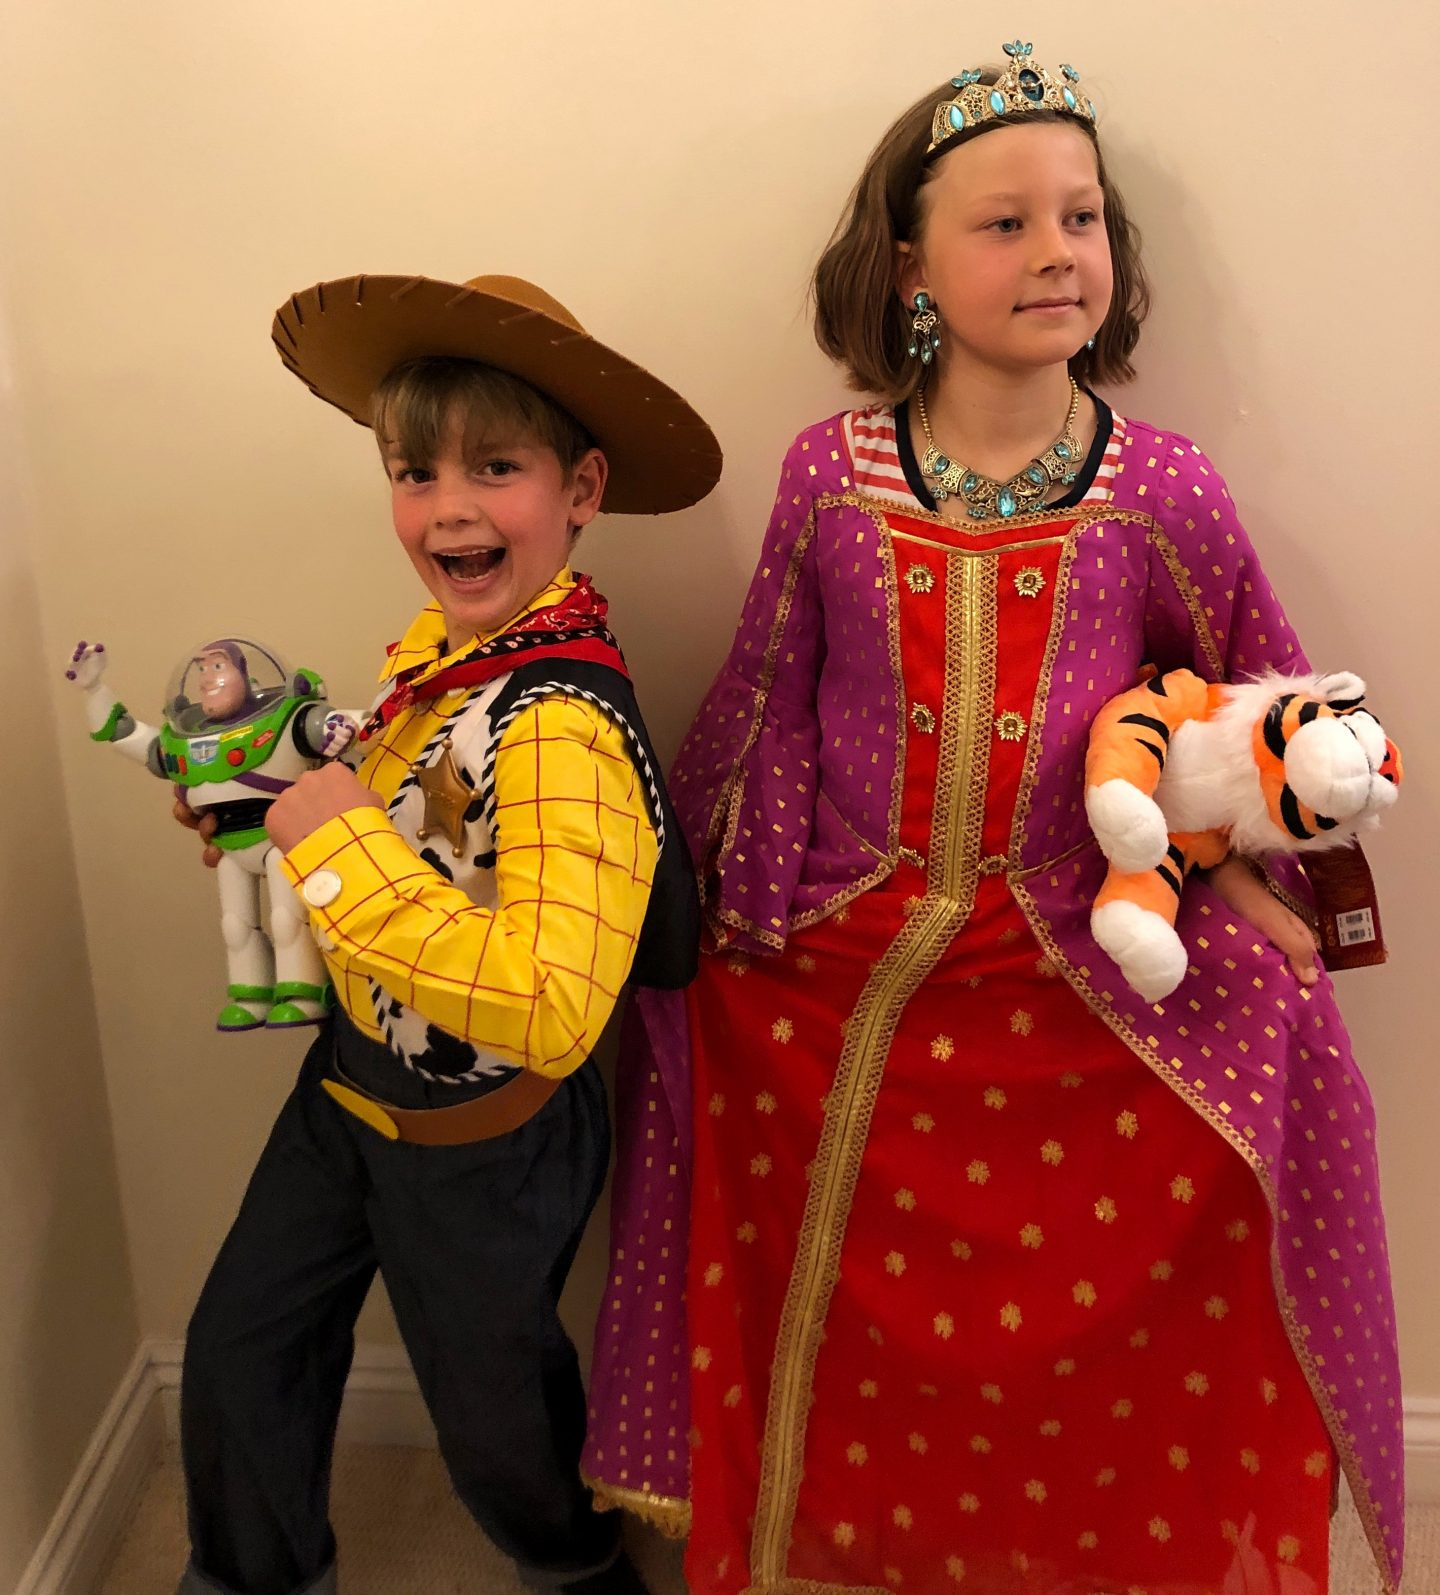 My two children getting into character in their shopDisney costumes. My son as Woody from Toy Story and my daughter going for a regal expression as Princess Jasmine from Aladdin.